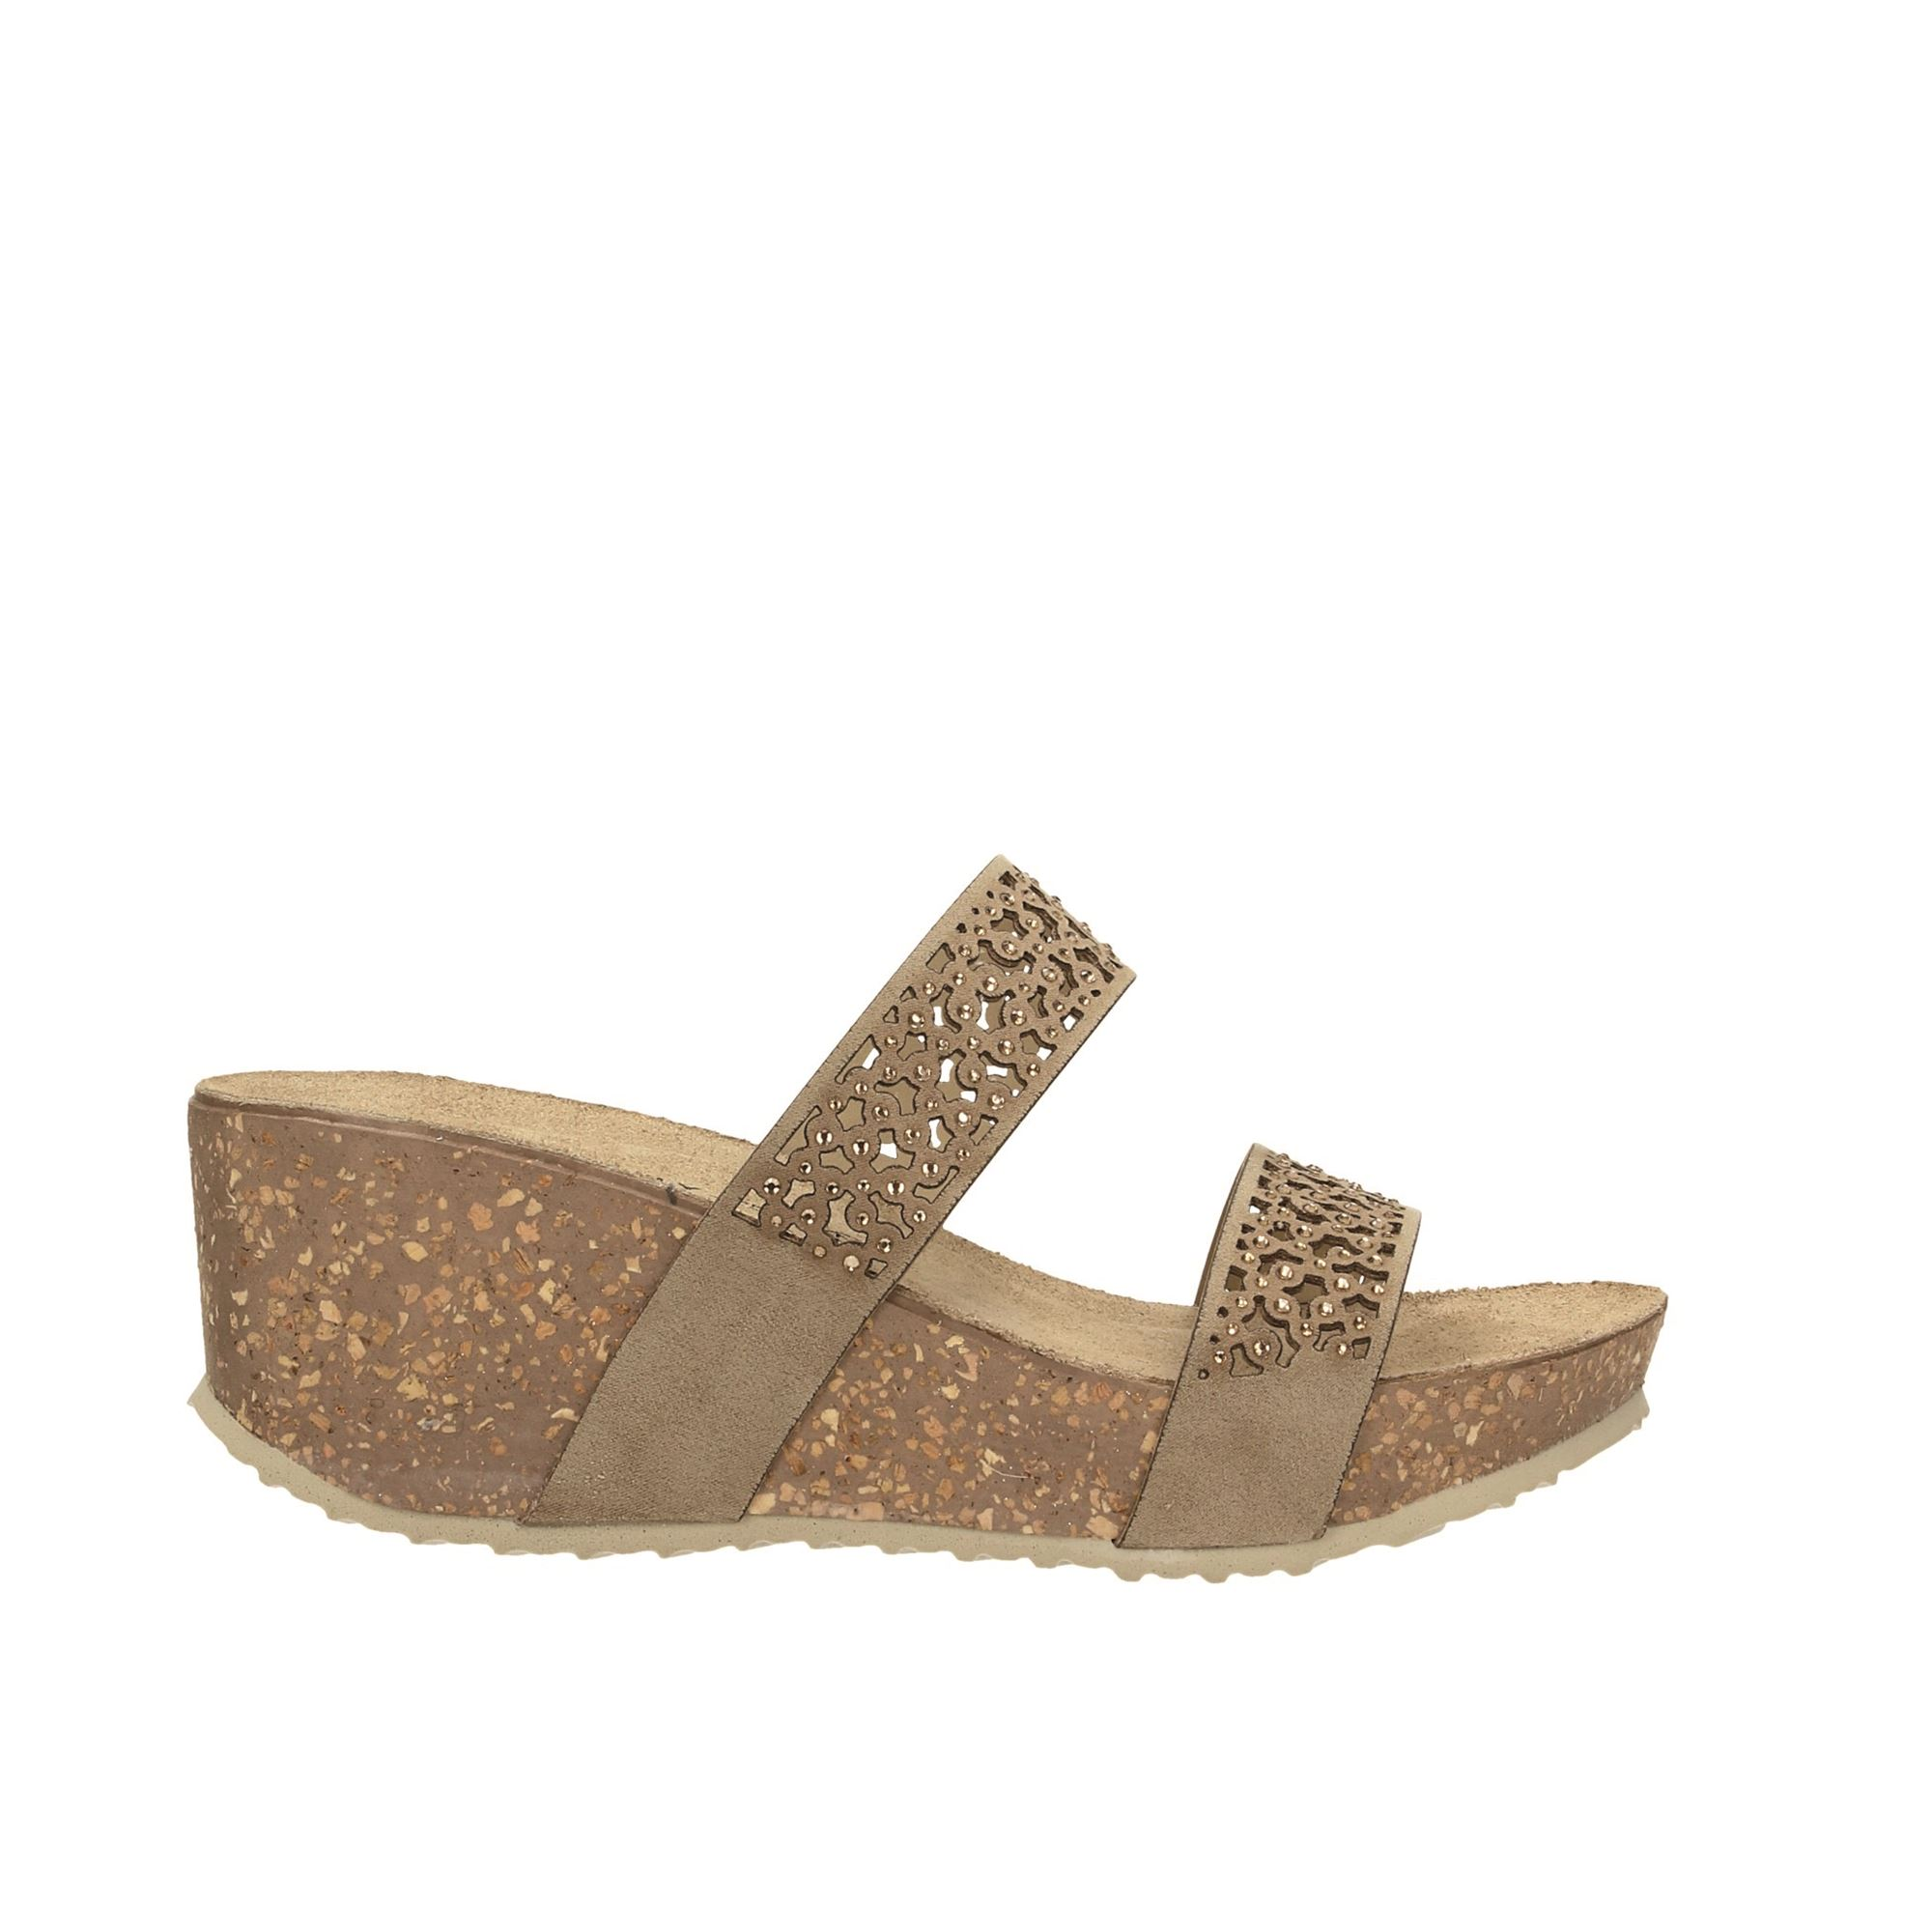 Tata Italia Shoes Woman Sandali Taupe 263540